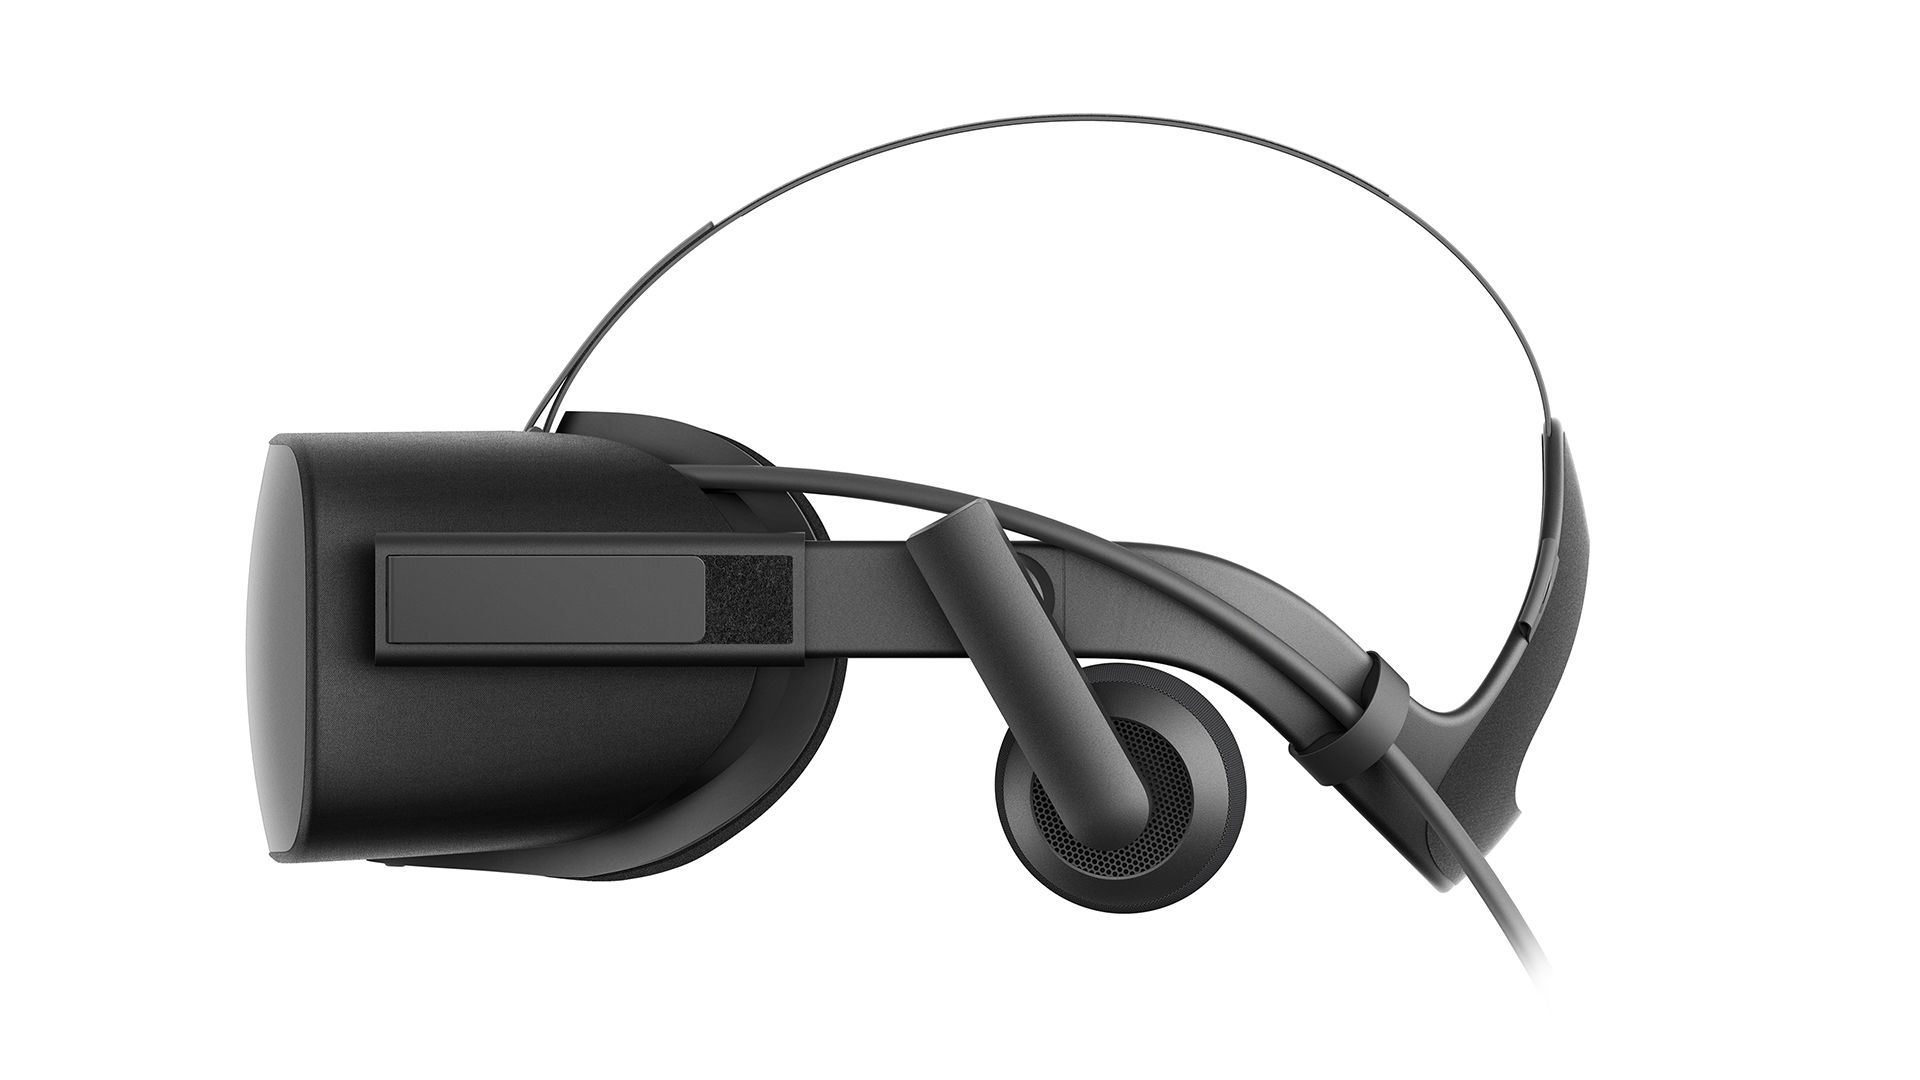 oculus-rift-side-view